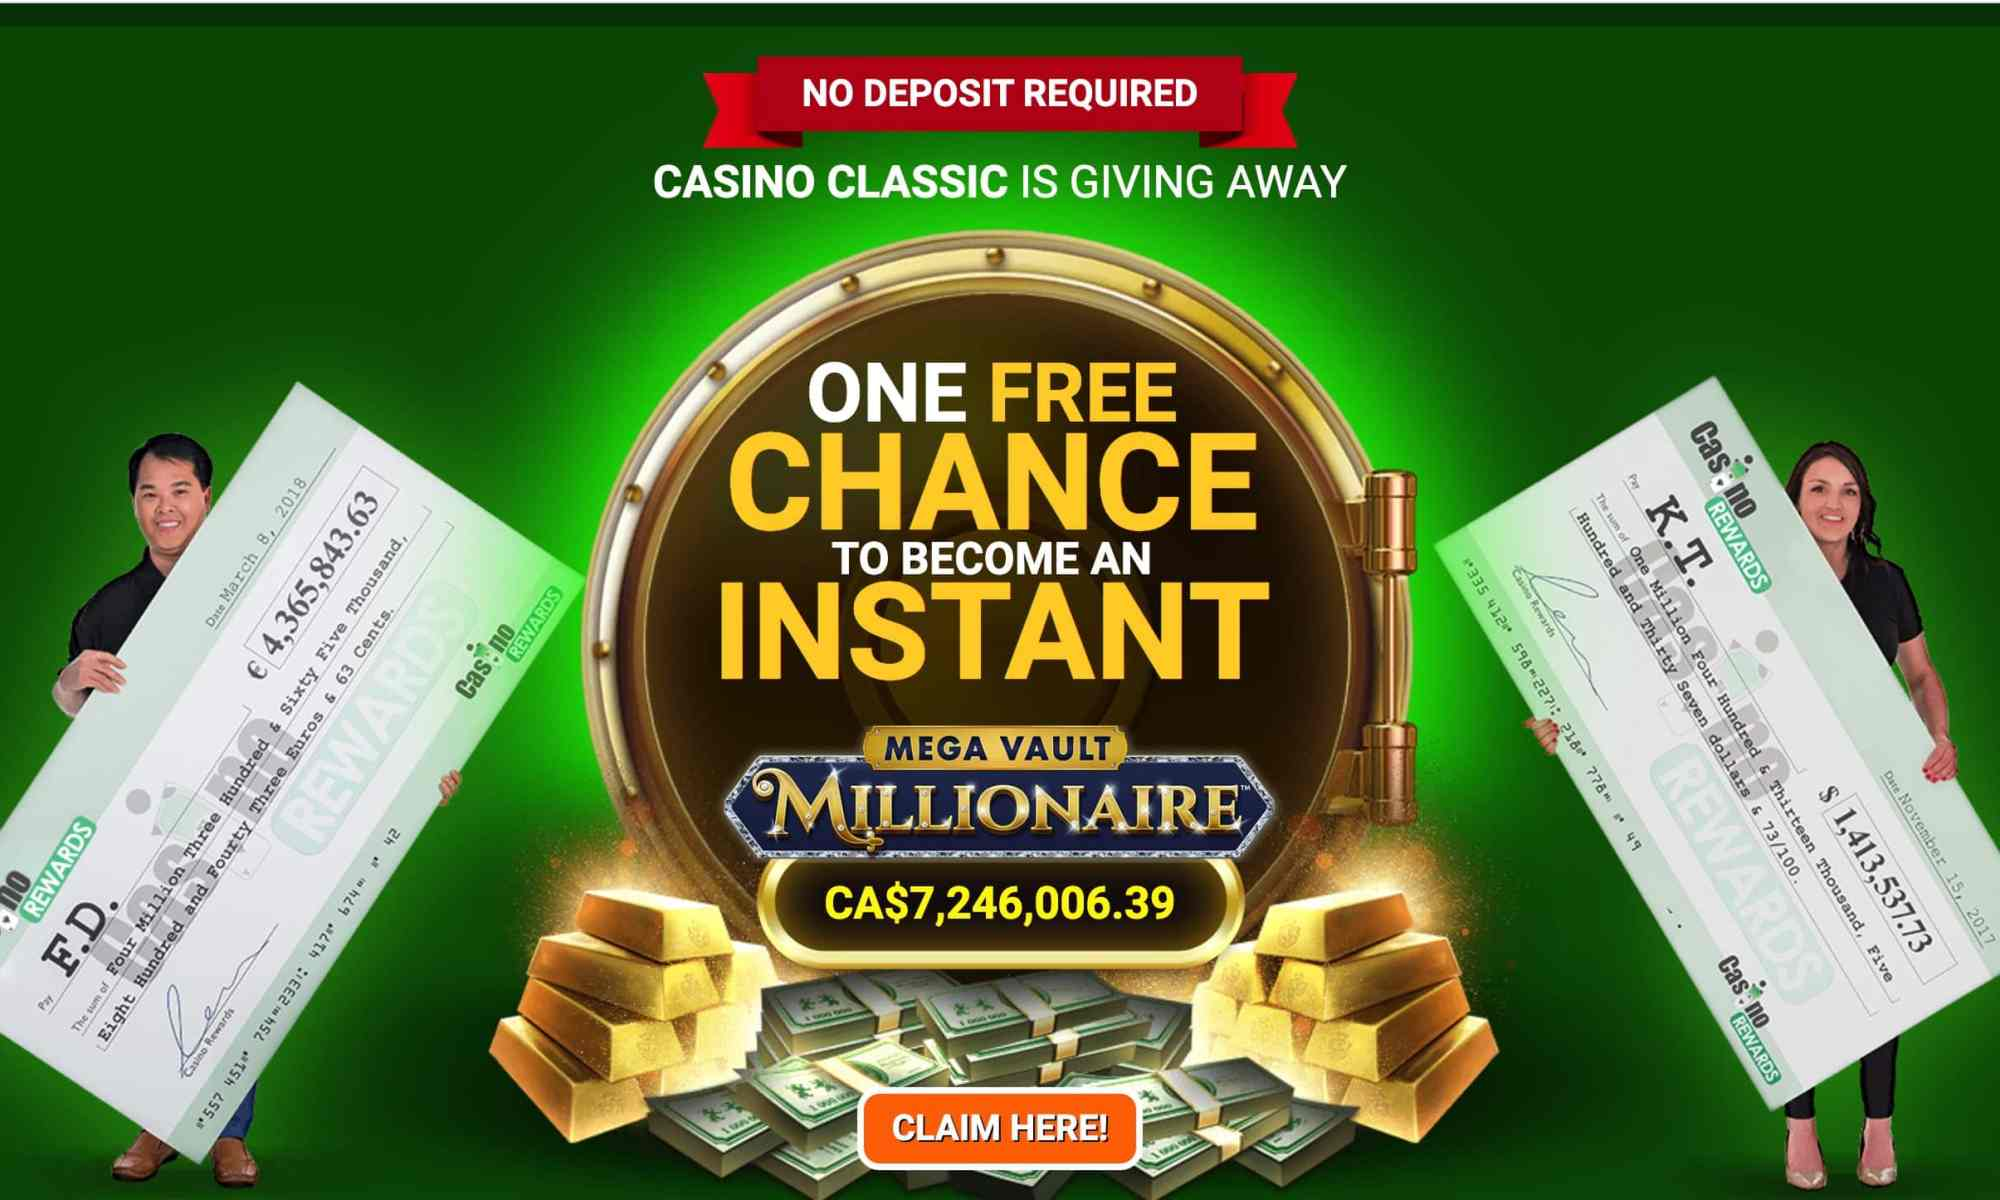 Casino Classic - $500 Match Prize Plus Loyalty Points